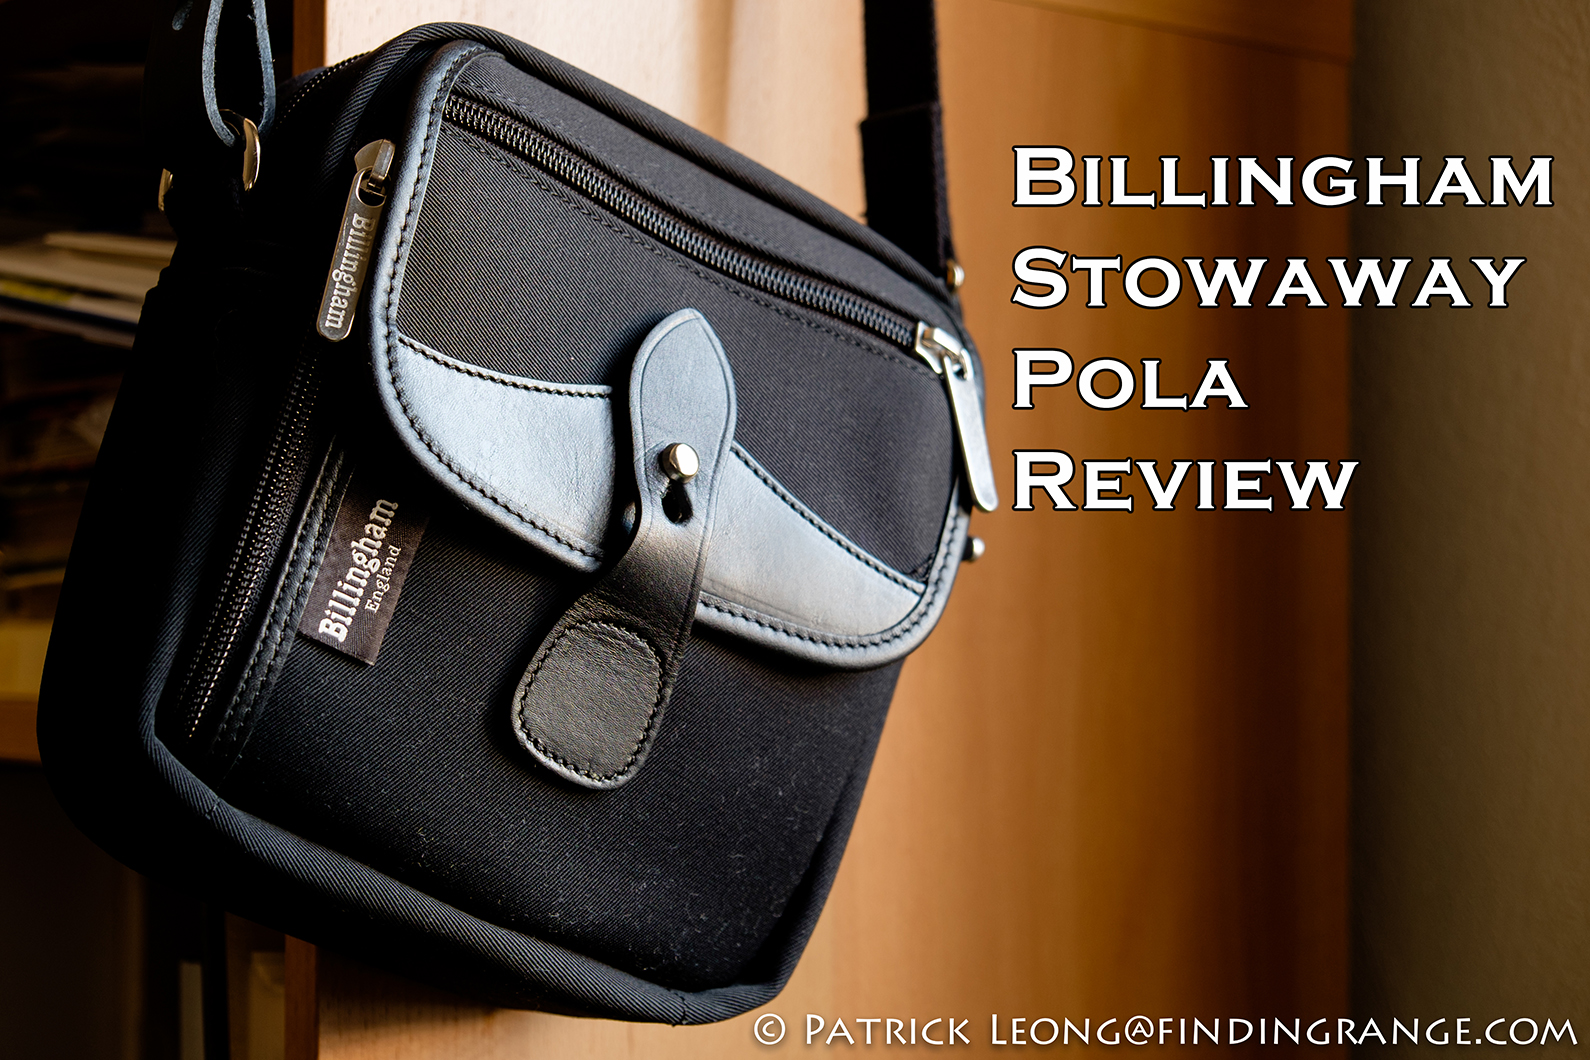 Billingham-Stowaway-Pola-Review-1